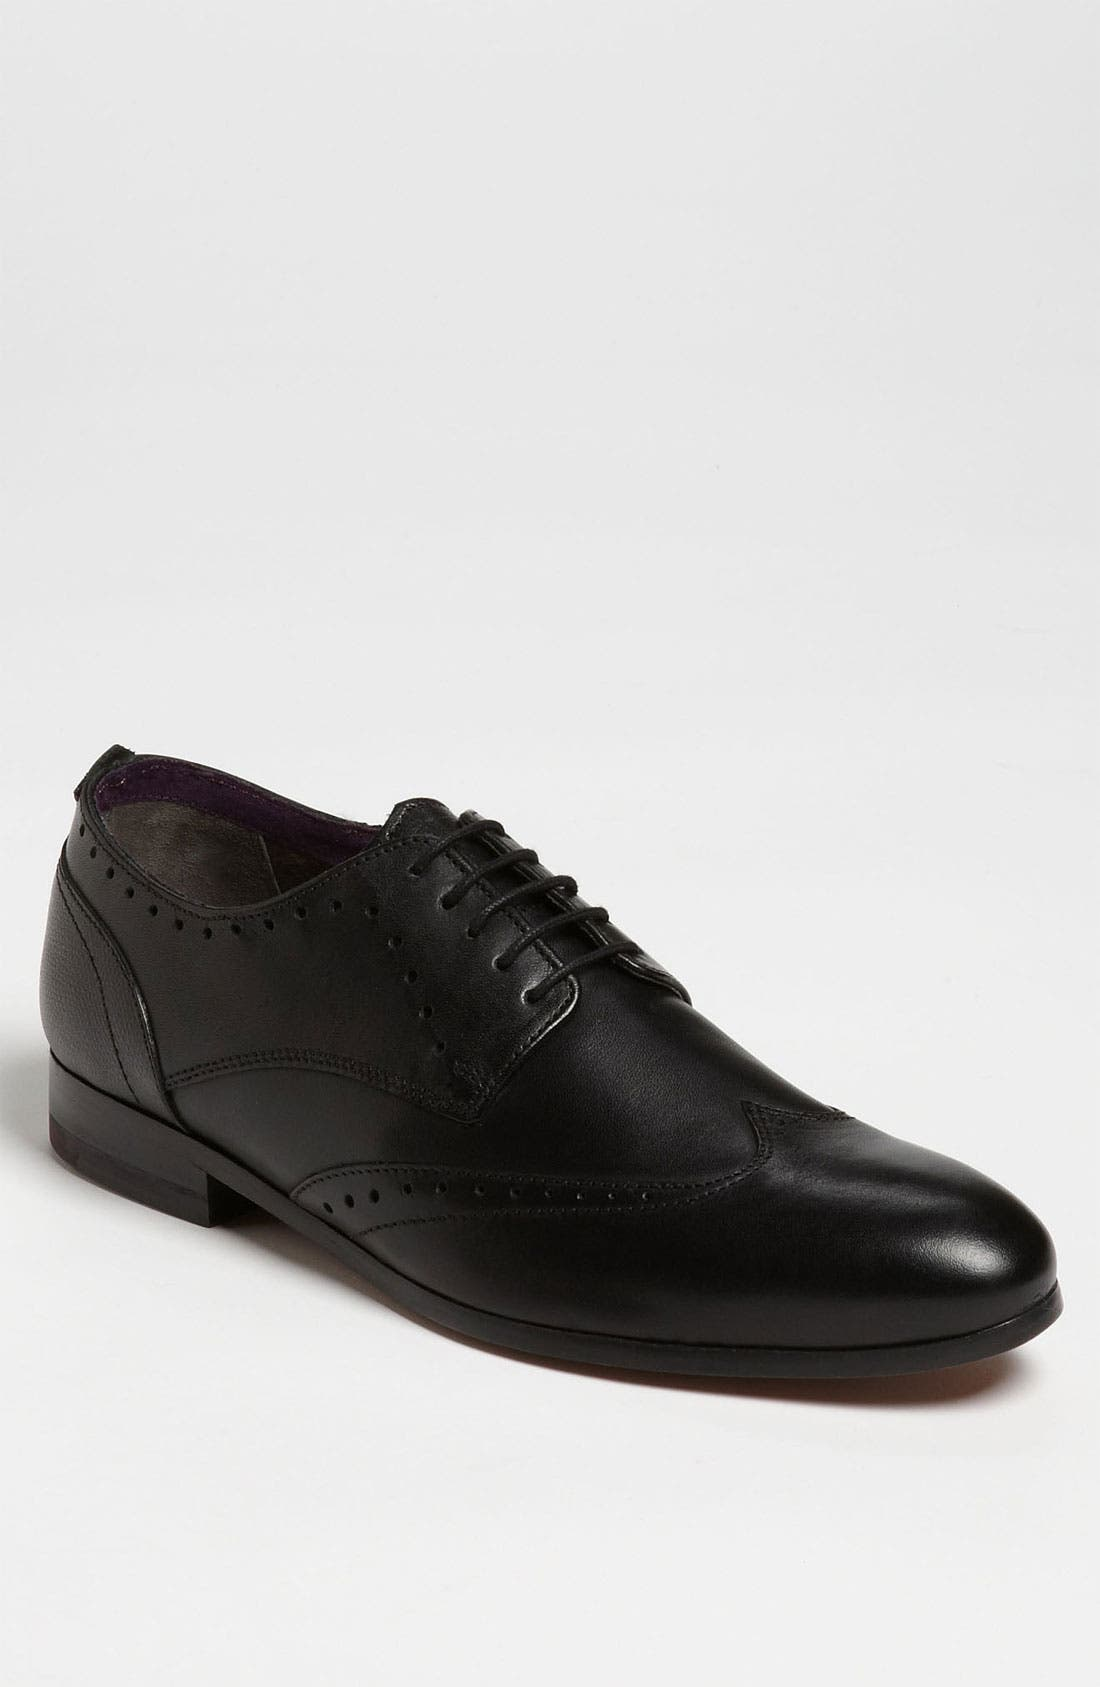 Main Image - Ted Baker London 'Carpen' Wingtip